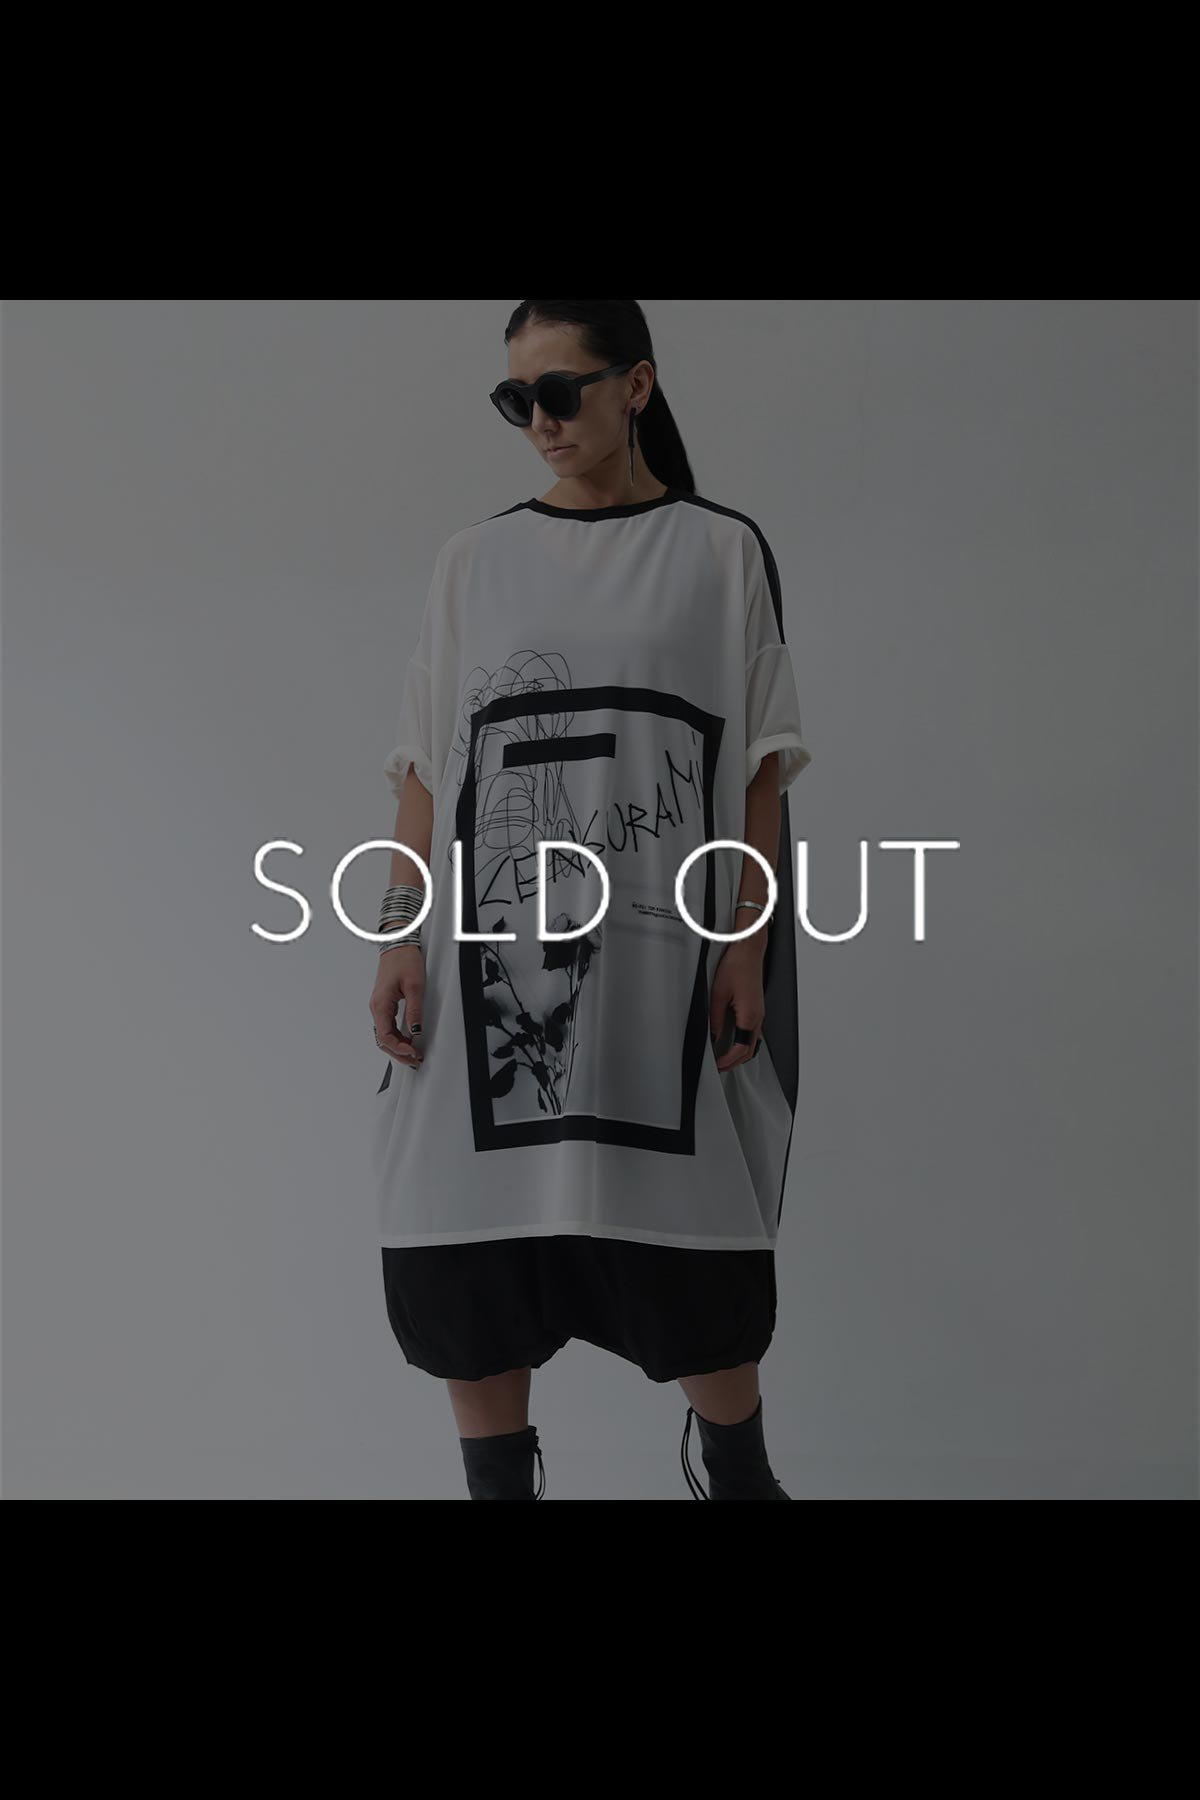 <img class='new_mark_img1' src='https://img.shop-pro.jp/img/new/icons8.gif' style='border:none;display:inline;margin:0px;padding:0px;width:auto;' />OVERSIZED PRINTED MESH TOPS LUS-104_BLACK/WHITE